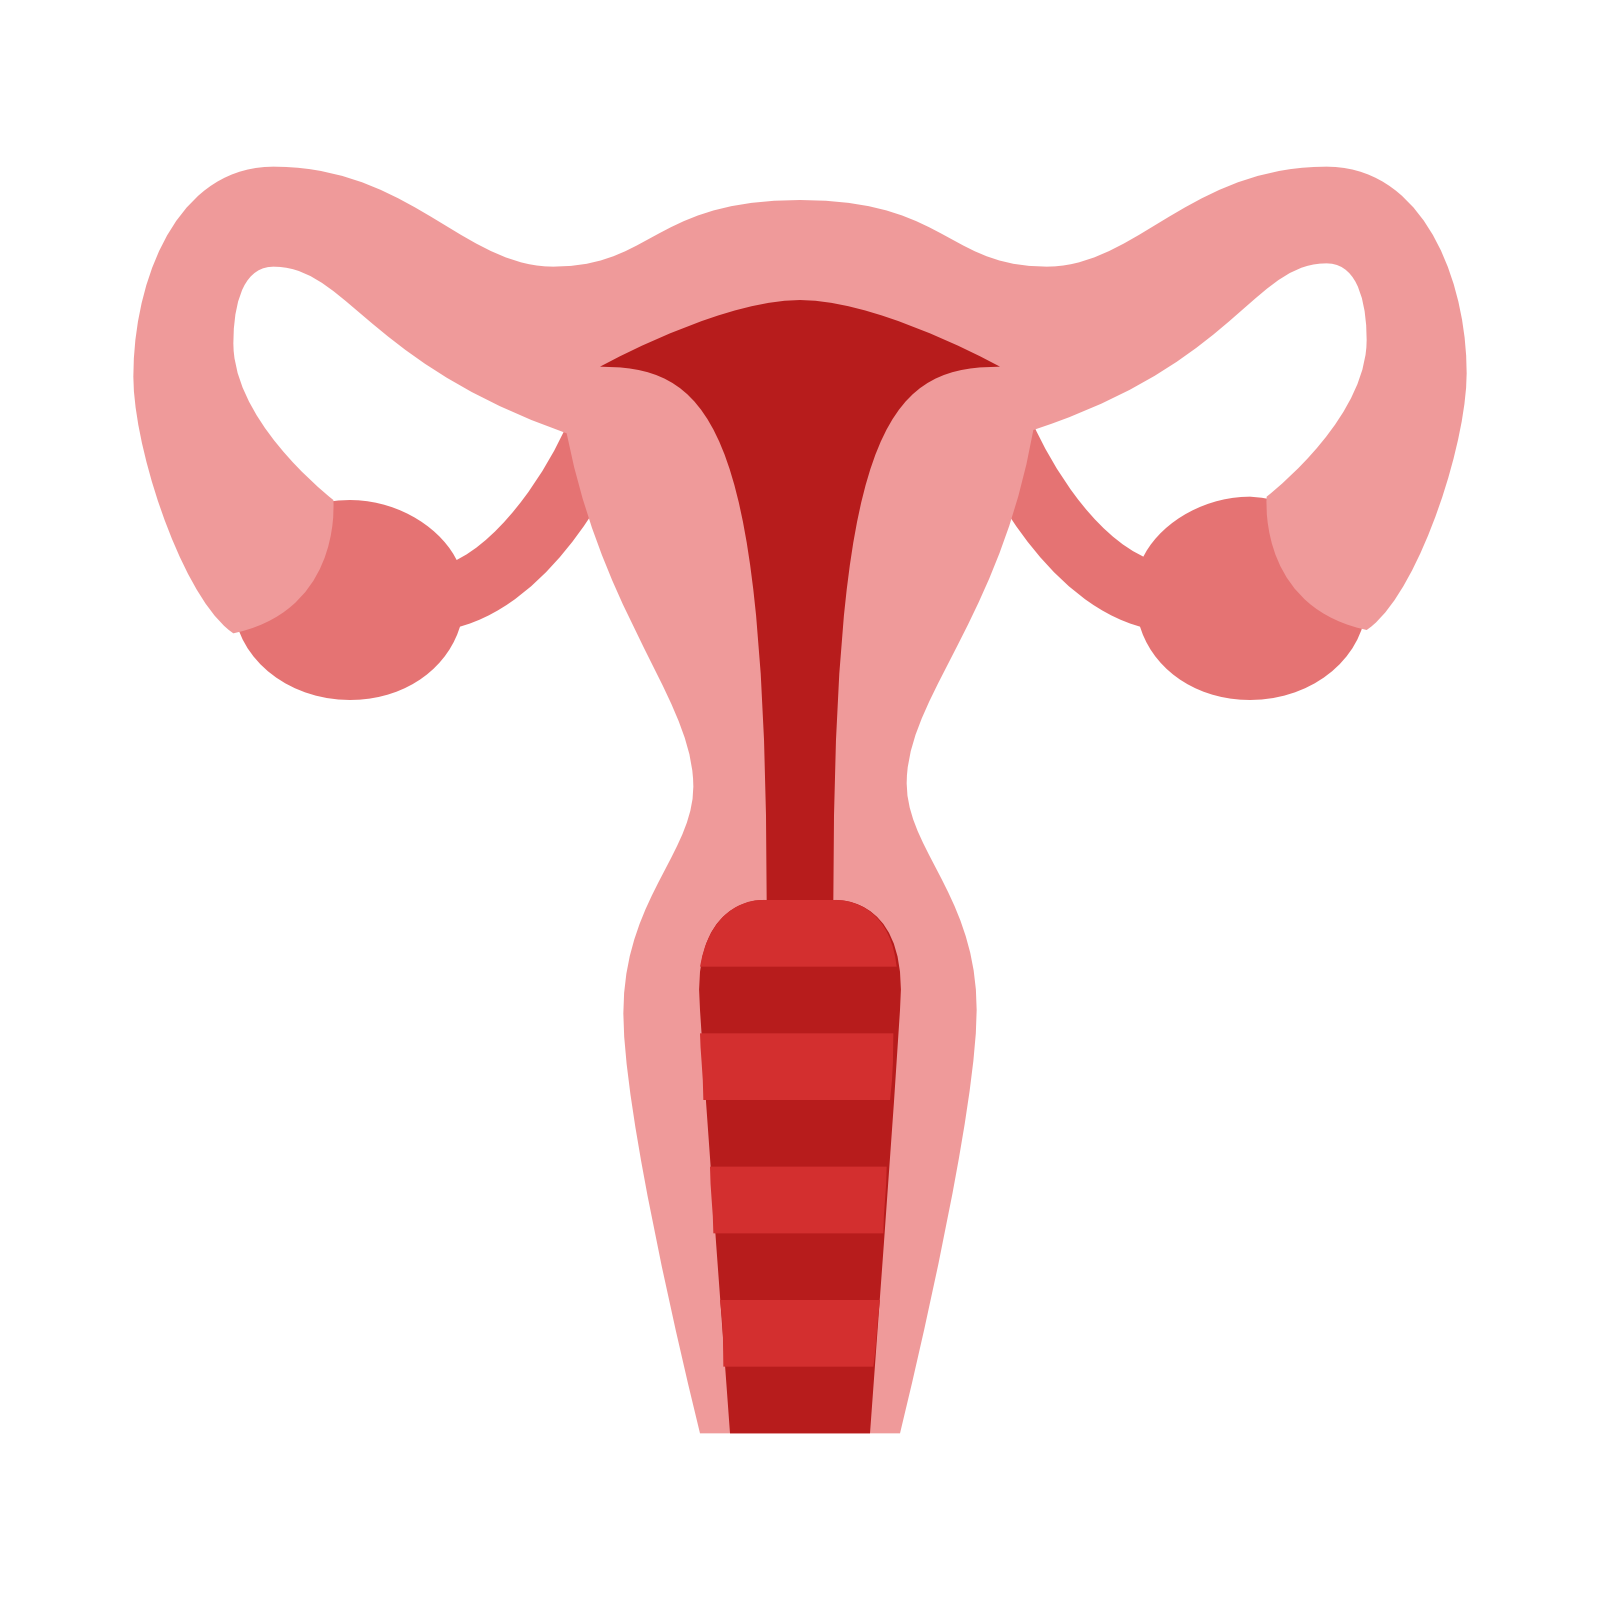 Womb clipart prenatal At Free Download icon Icons8